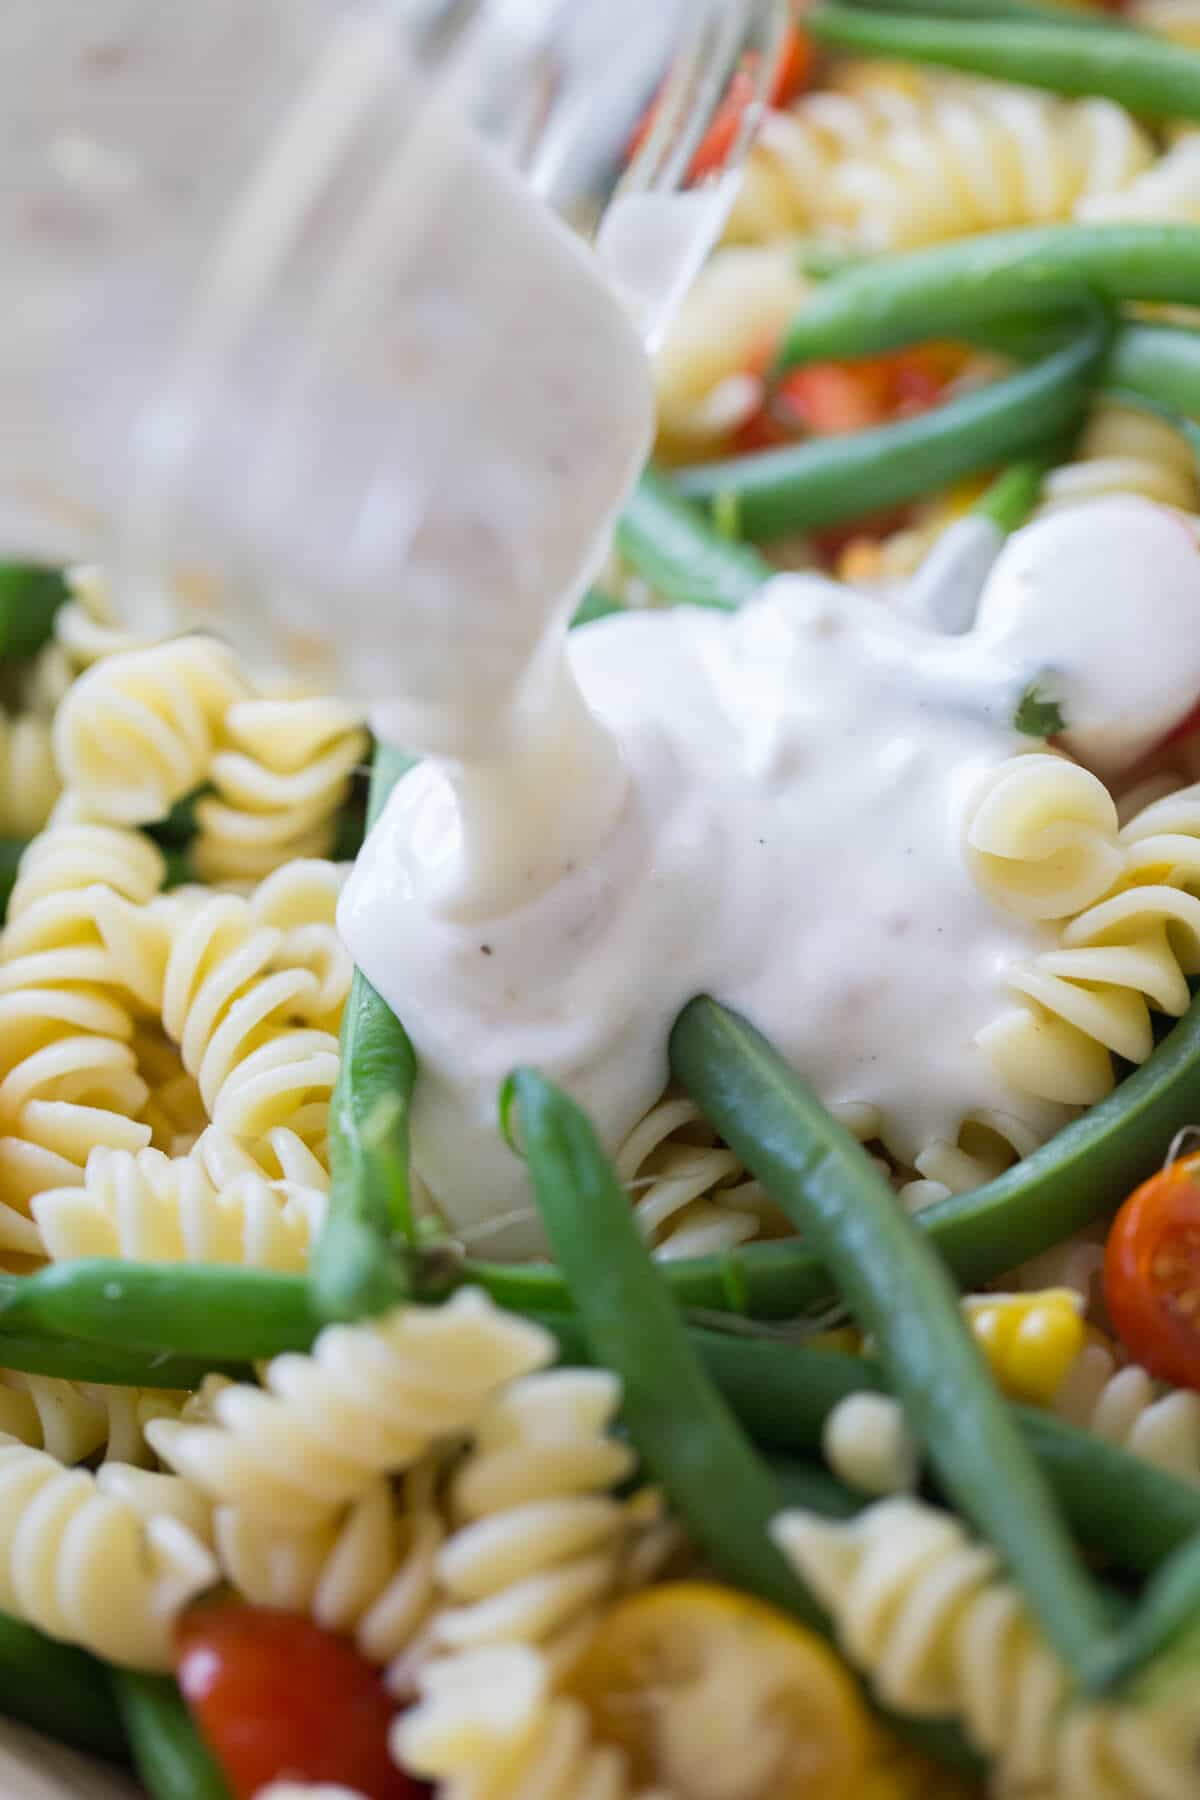 BBQ's and picnics need a good side dish, this vegetable pasta salad is perfect!